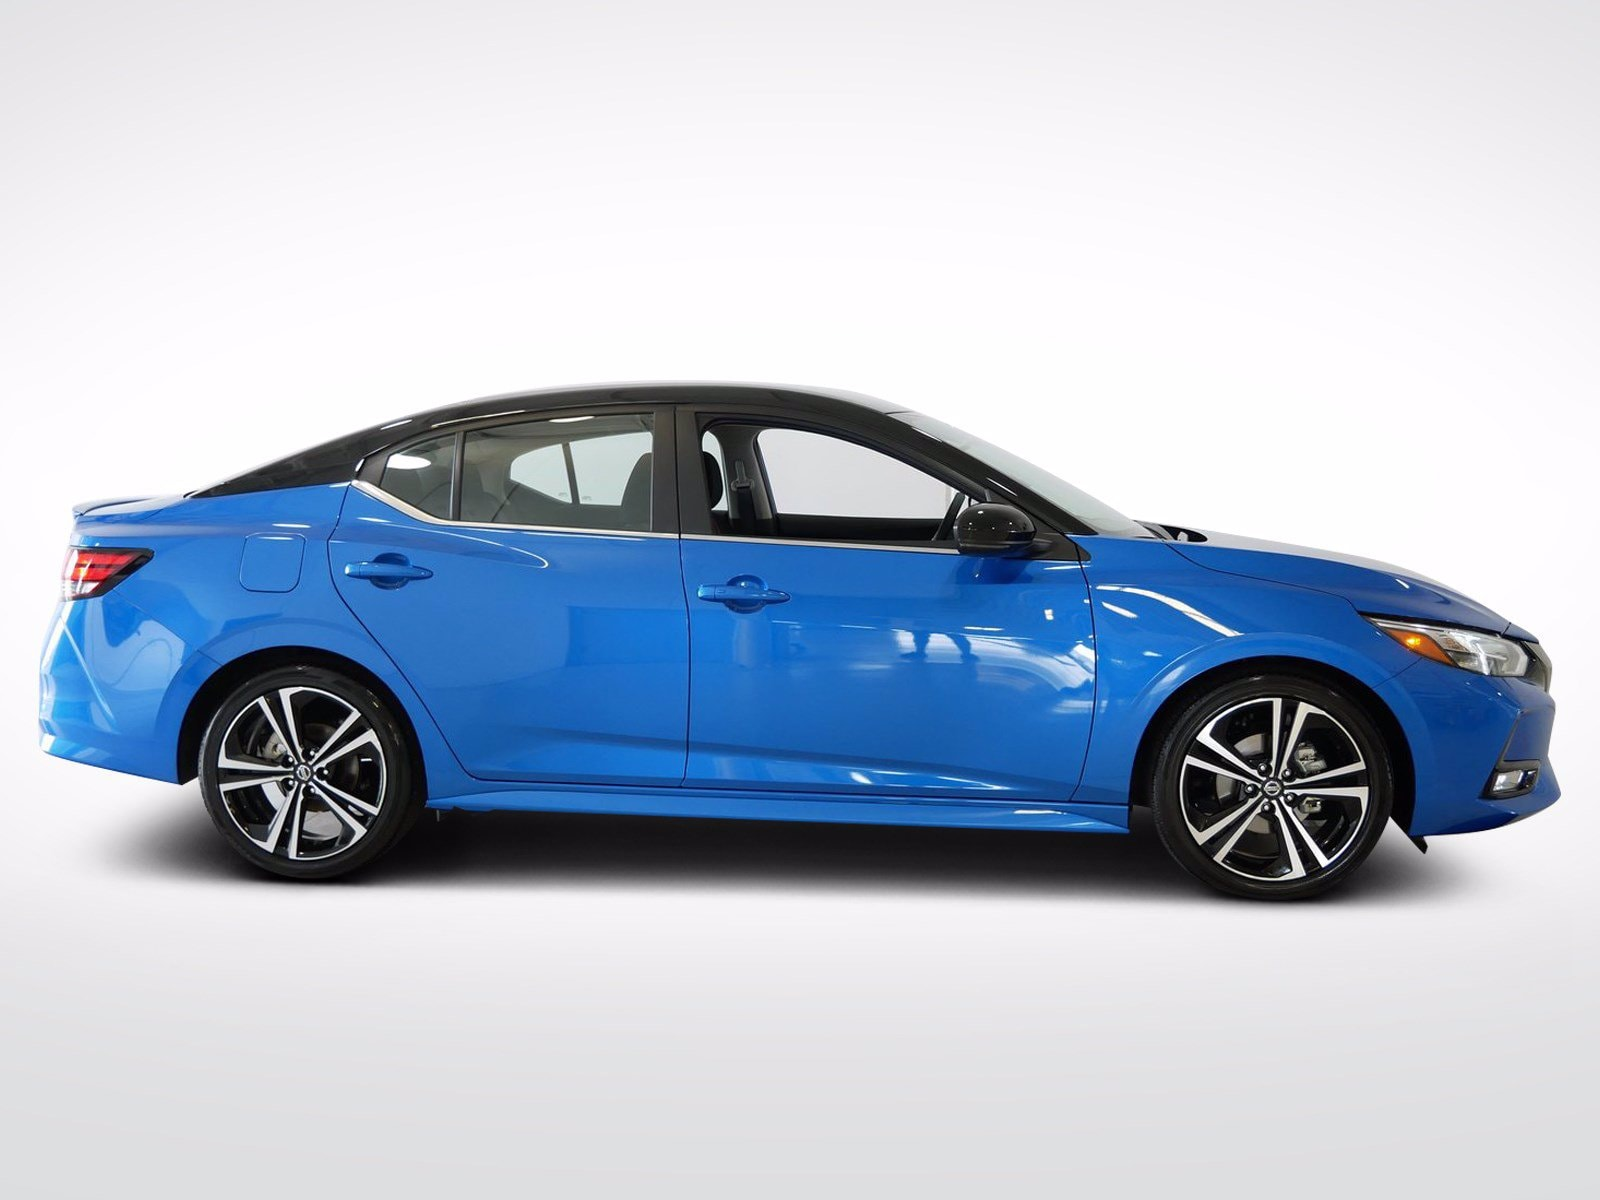 Used 2021 Nissan Sentra SR with VIN 3N1AB8DV6MY204397 for sale in Willmar, Minnesota